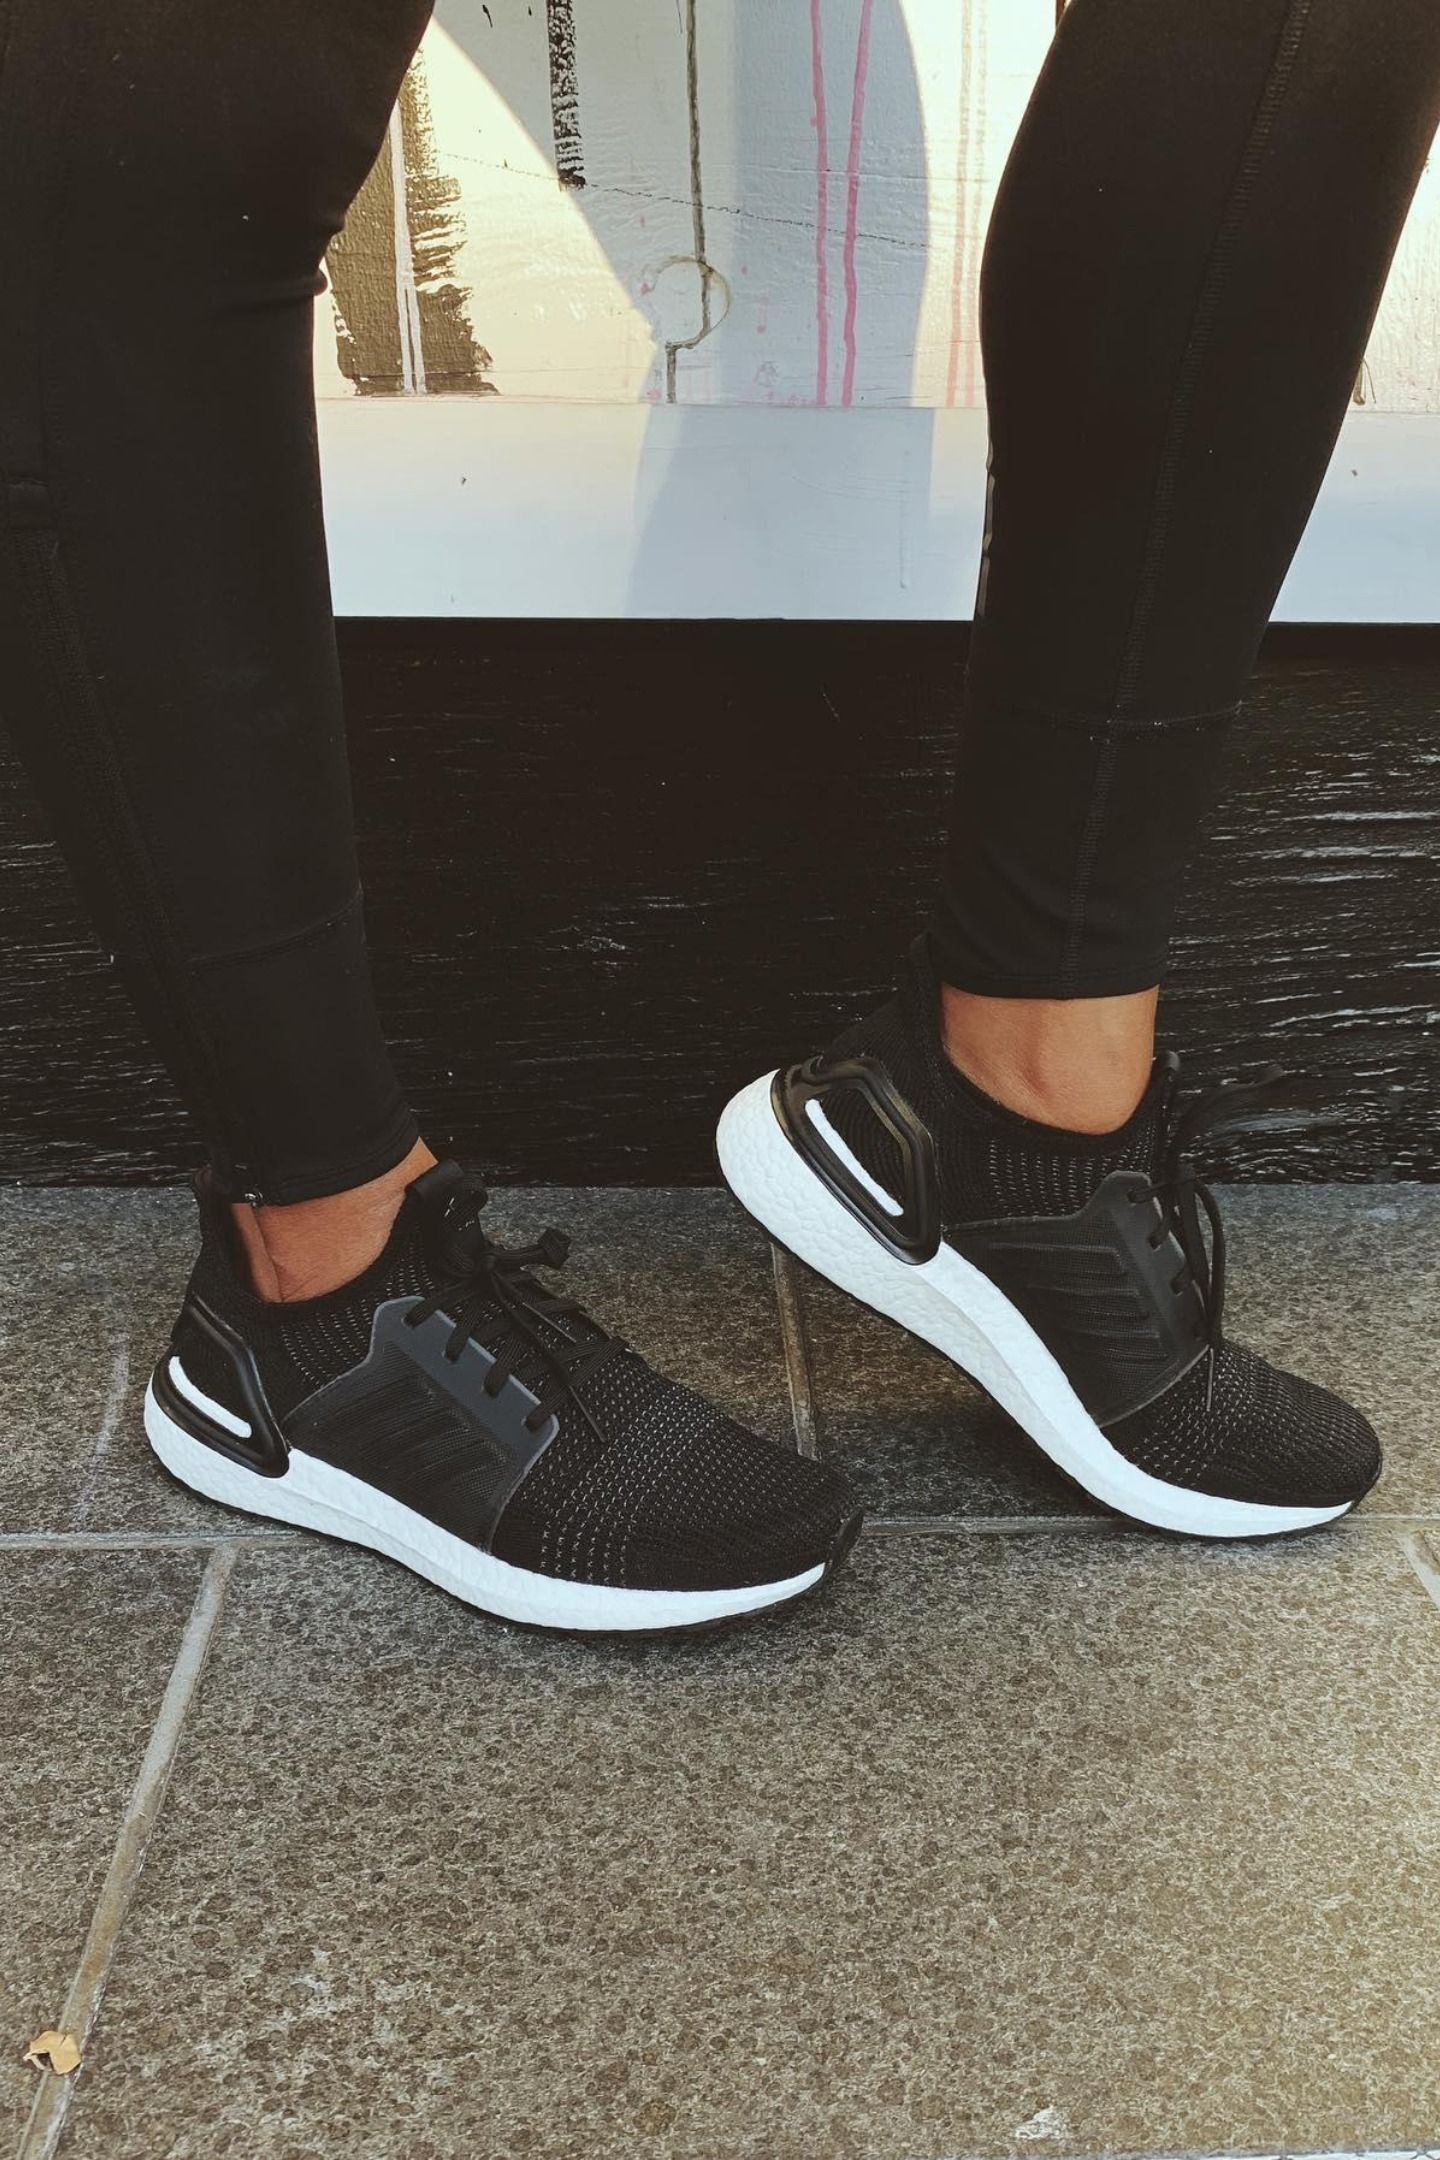 Adidas Ultraboost 19 Shoes Black Adidas Us Adidas Ultra Boost Adidas Shoes Women Adidas Outfit Shoes